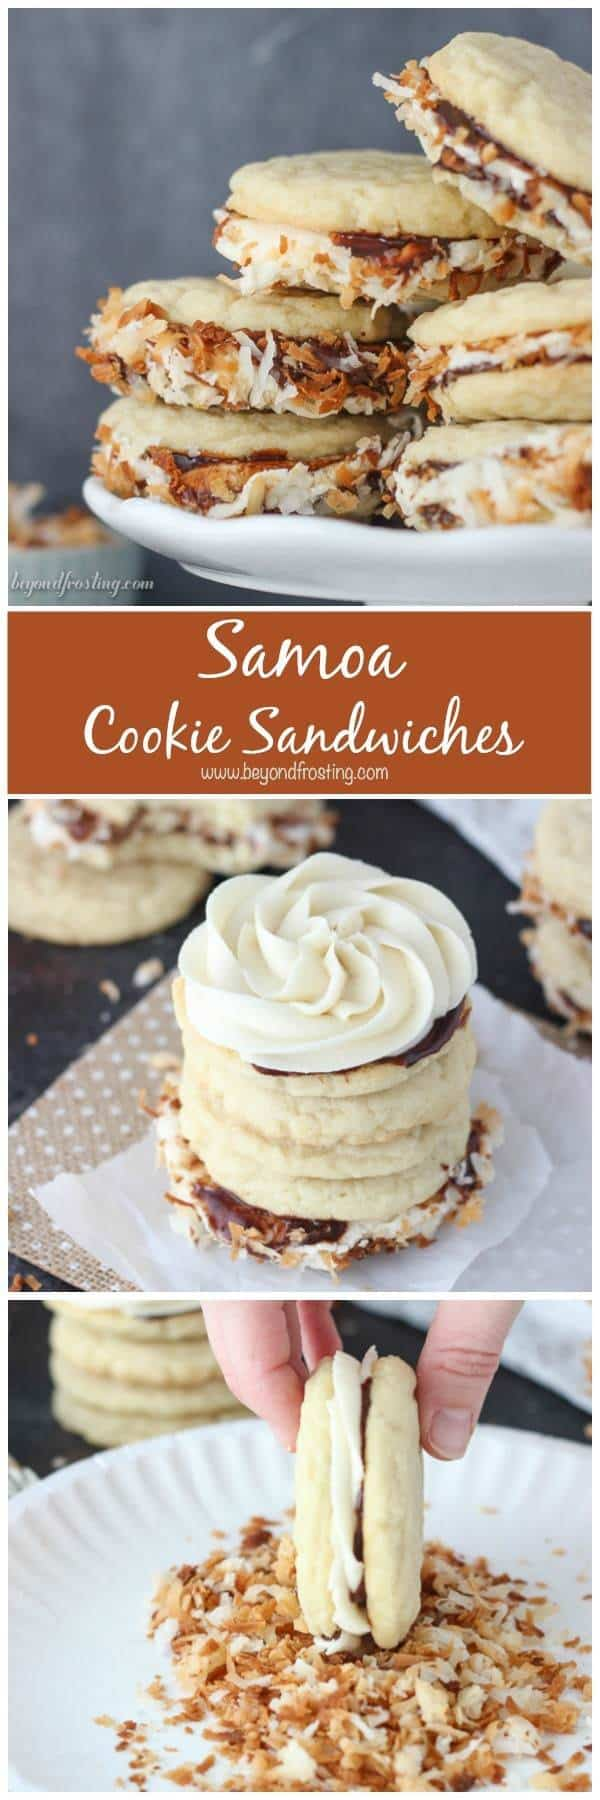 These Samoa Cookie Sandwiches are completely irresistible. The caramel buttercream is sandwiched between two chewy sugar cookies coated with chocolate sauce and rolled in toasted coconut.